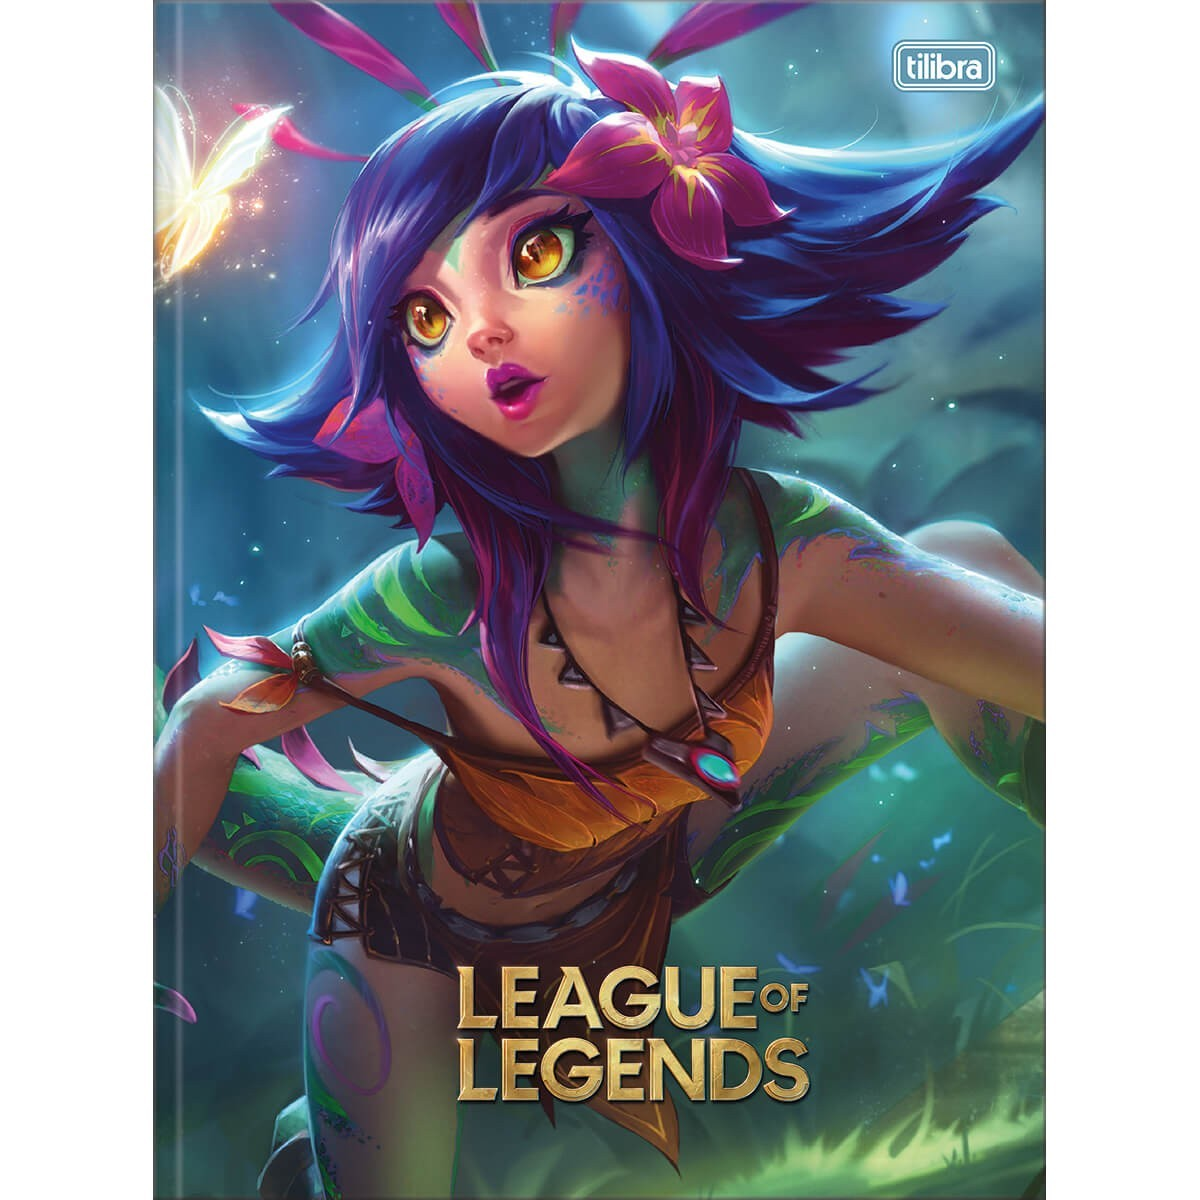 Caderno Brochura Capa Dura Universitário League of Legends Nekko 80 Folhas